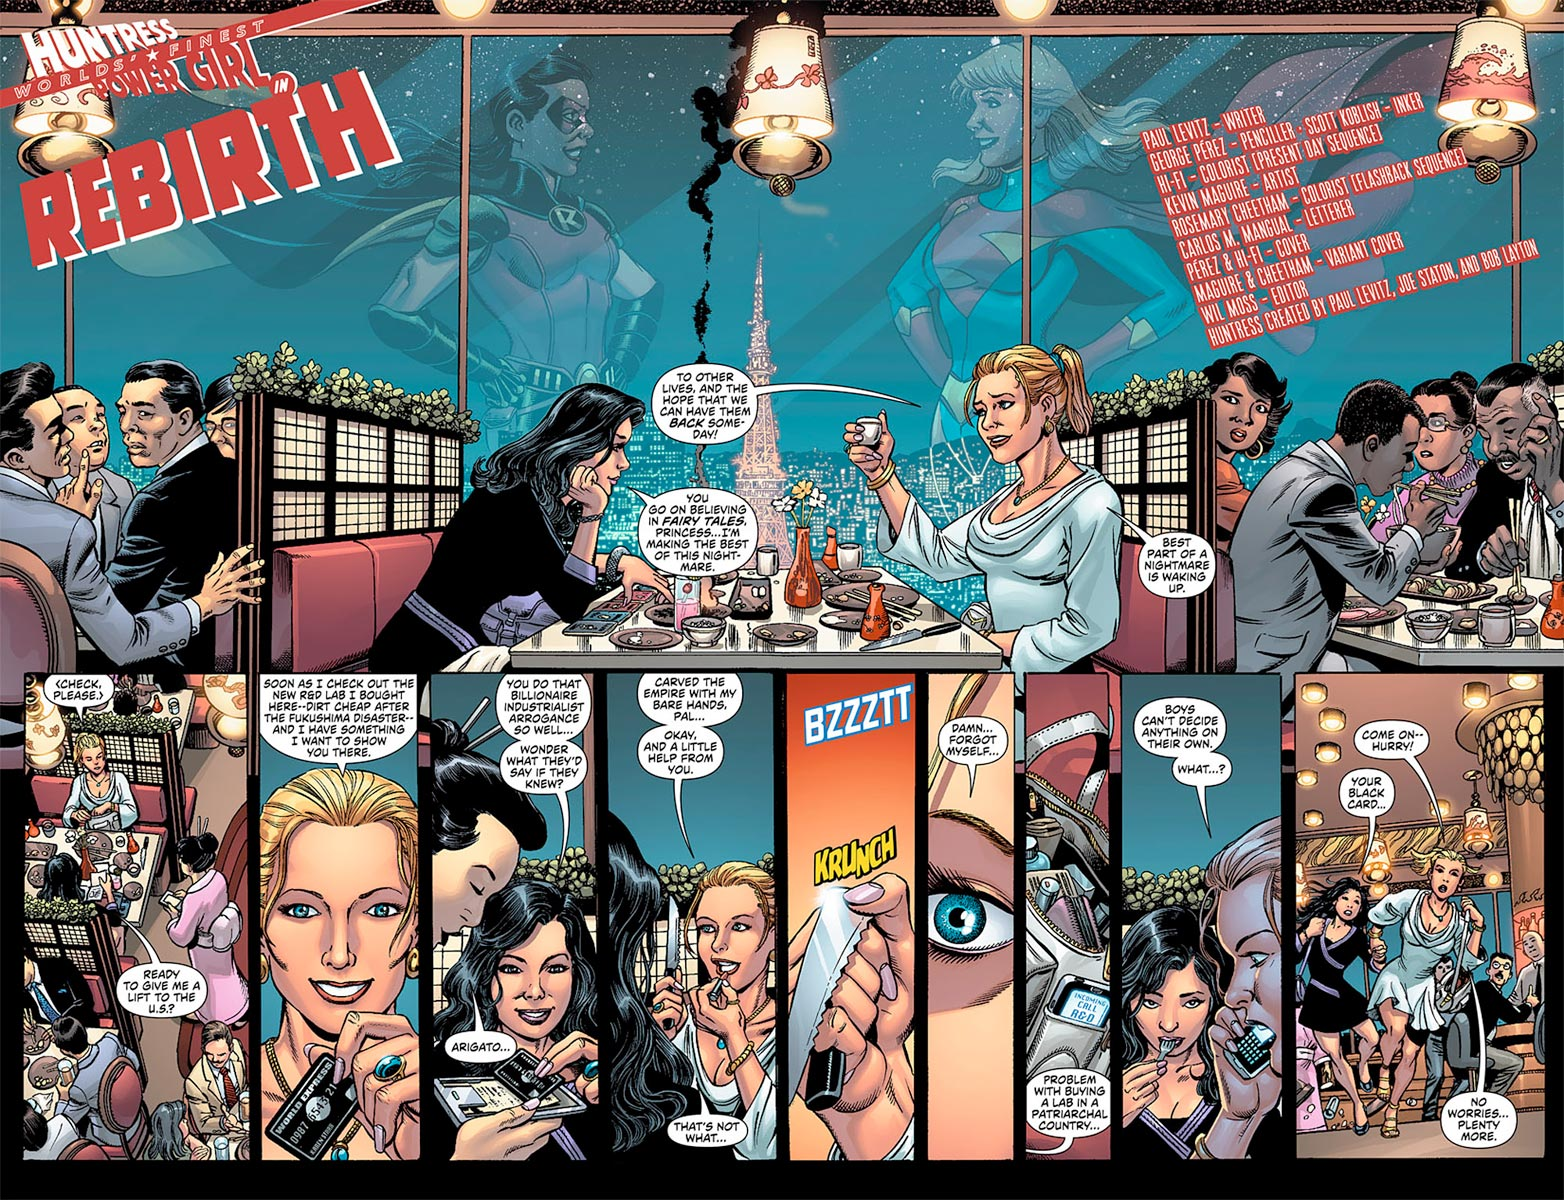 World's Finest #1 - page 2 and 3 Preview